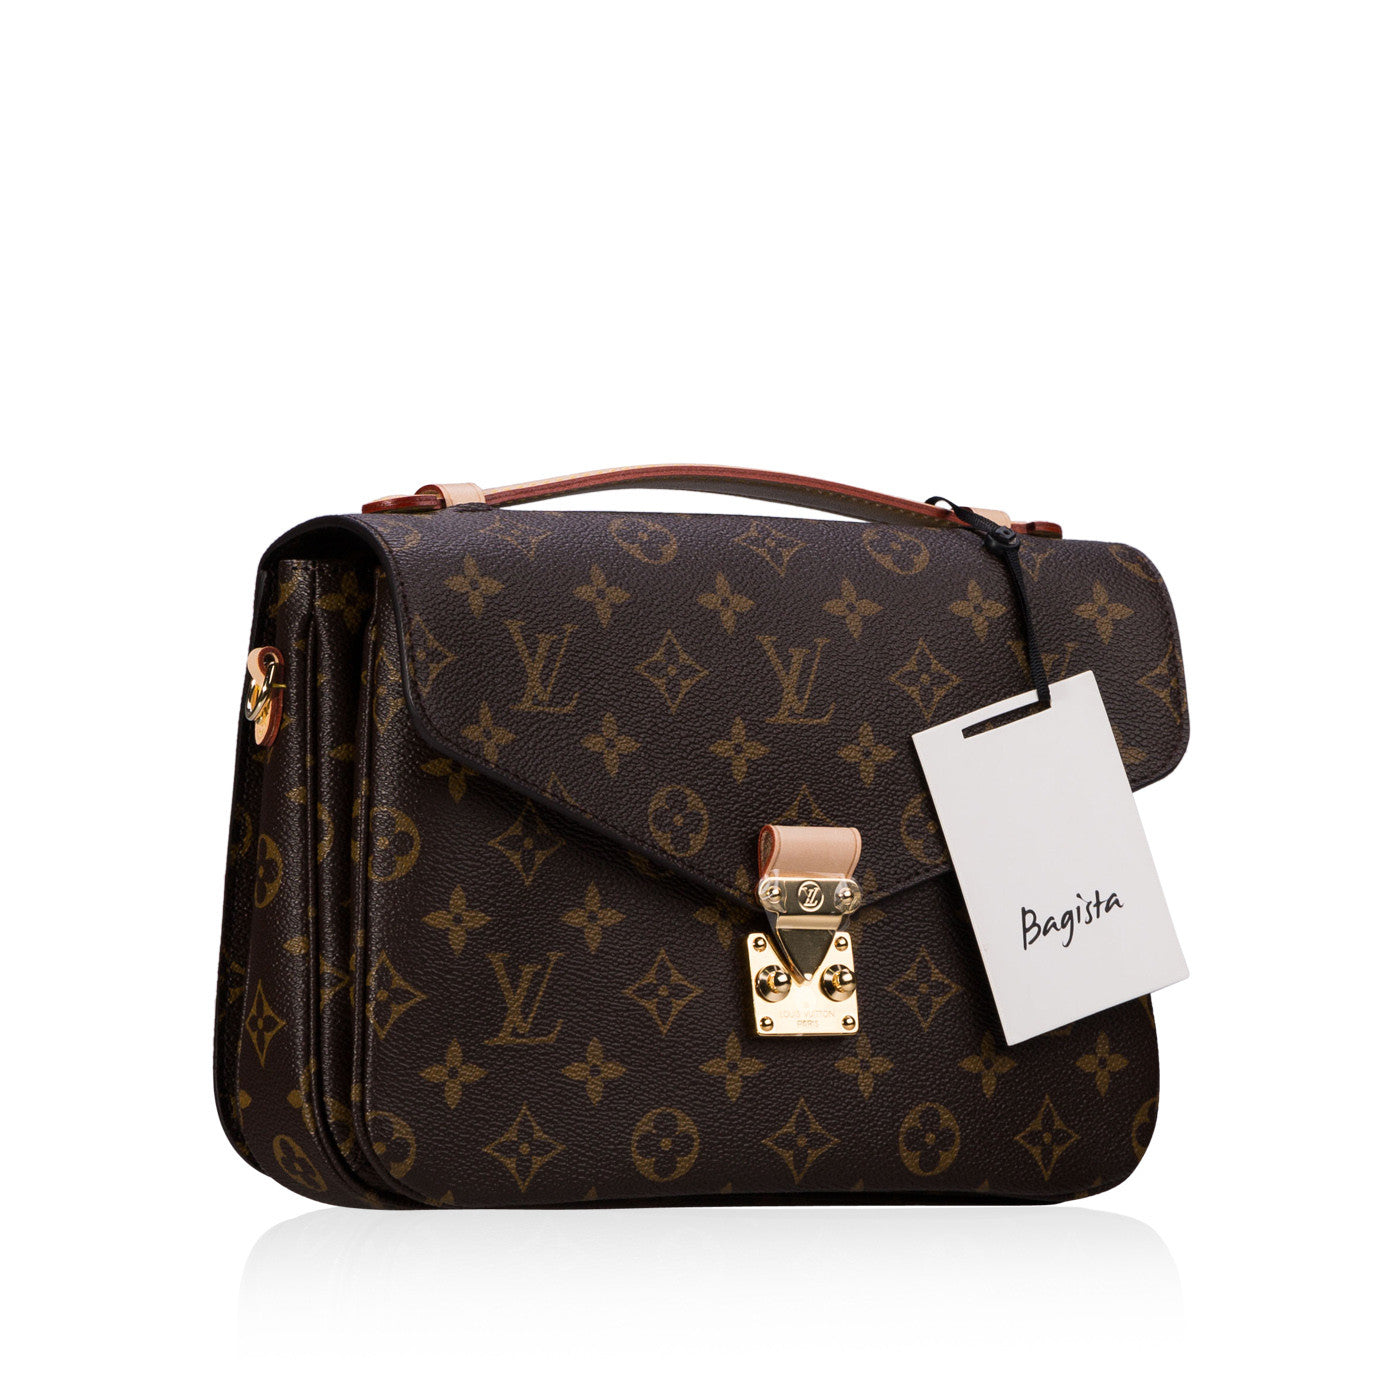 Louis Vuitton Pochette Metis Bagista